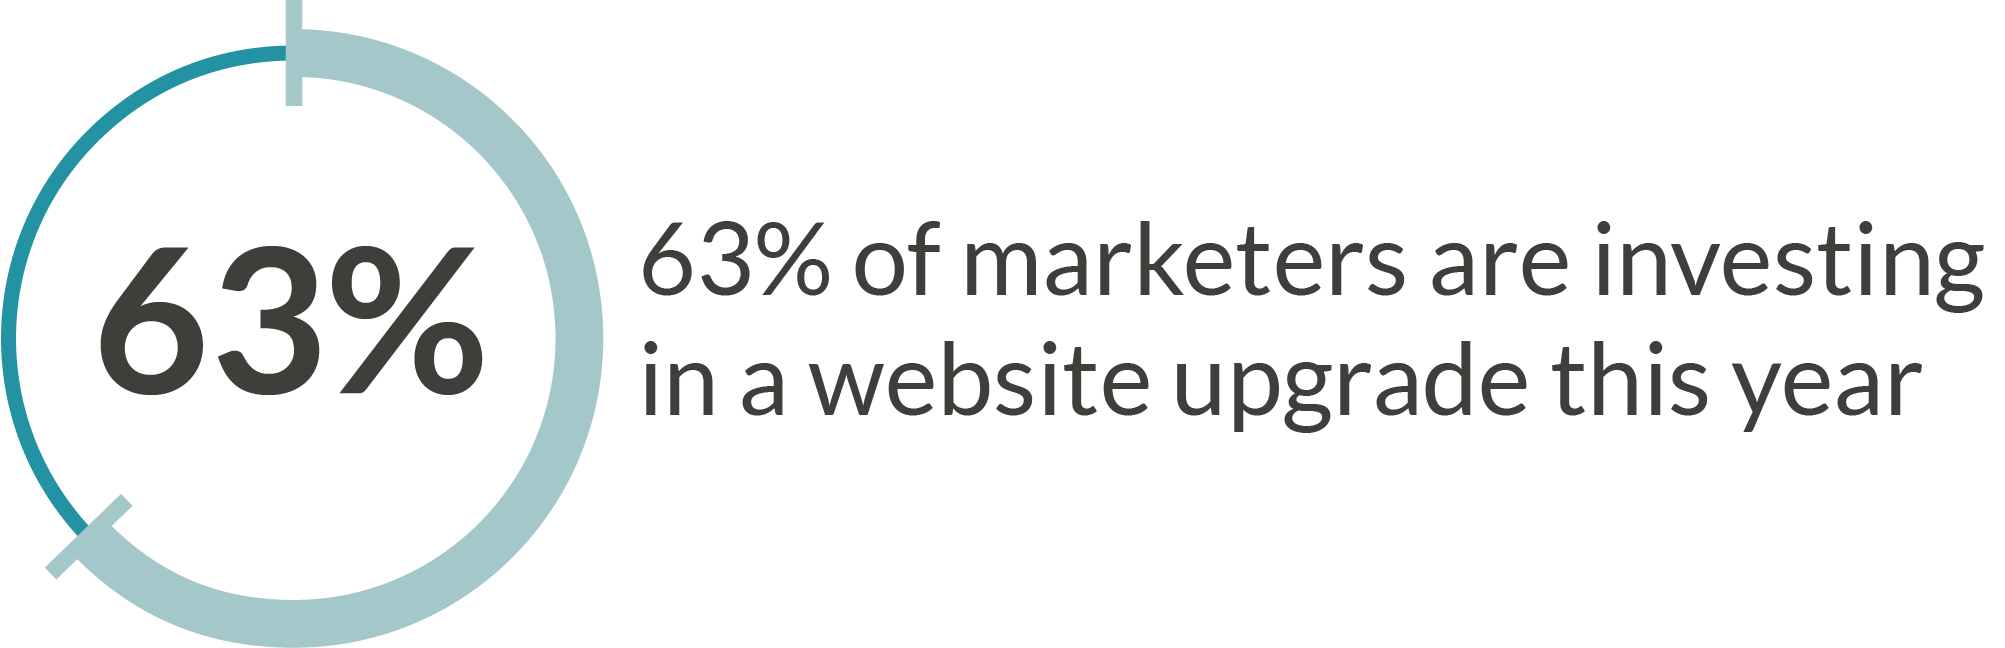 63% of marketers are investing in their website